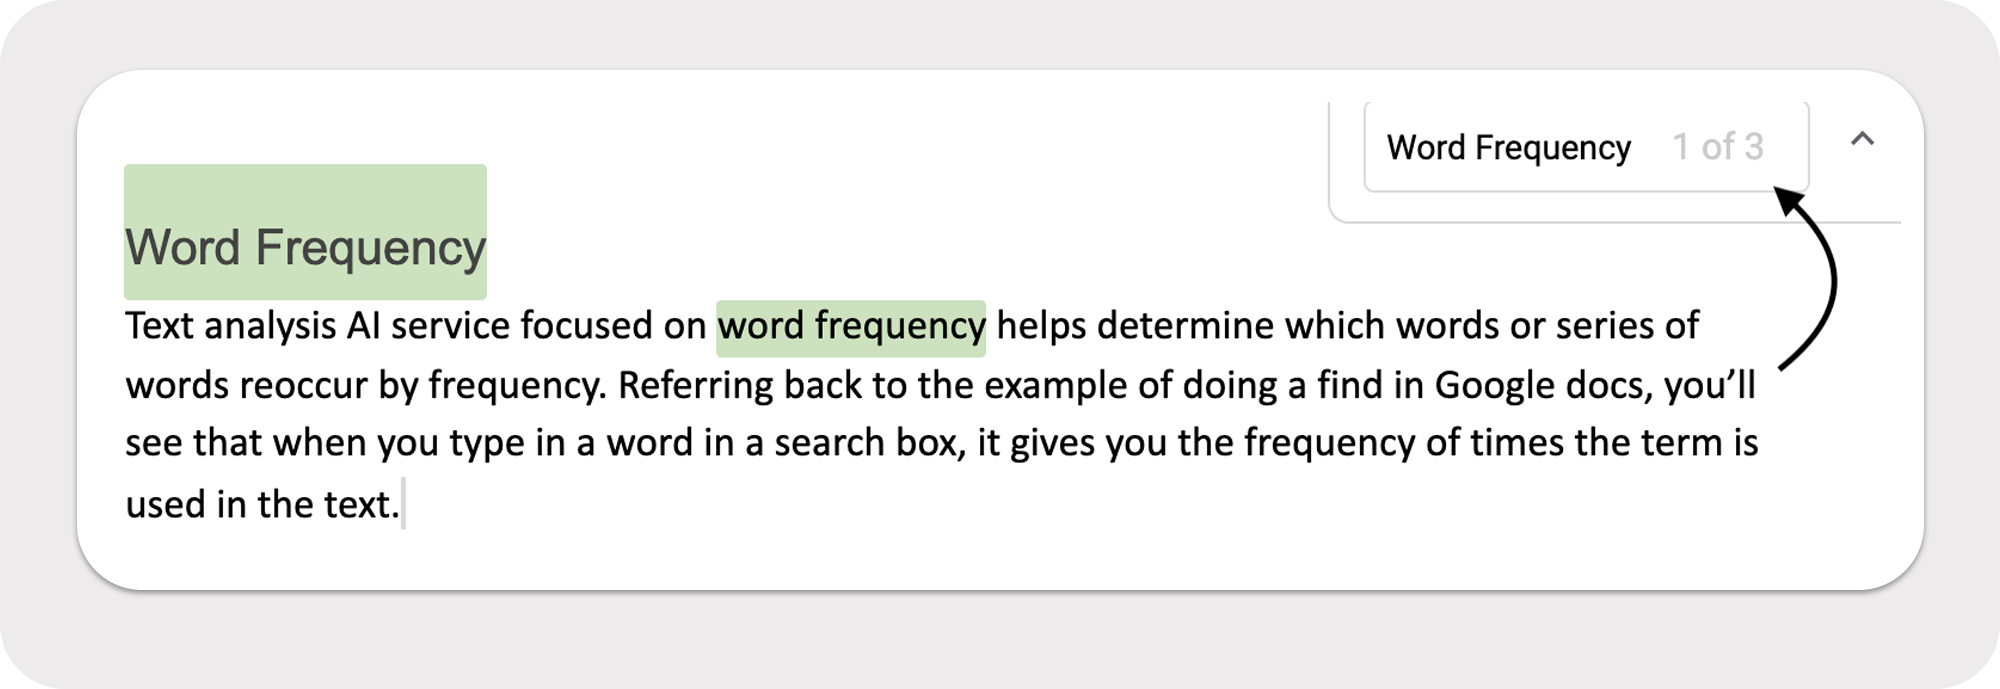 Word frequency - analyzing how frequently words appear in a text